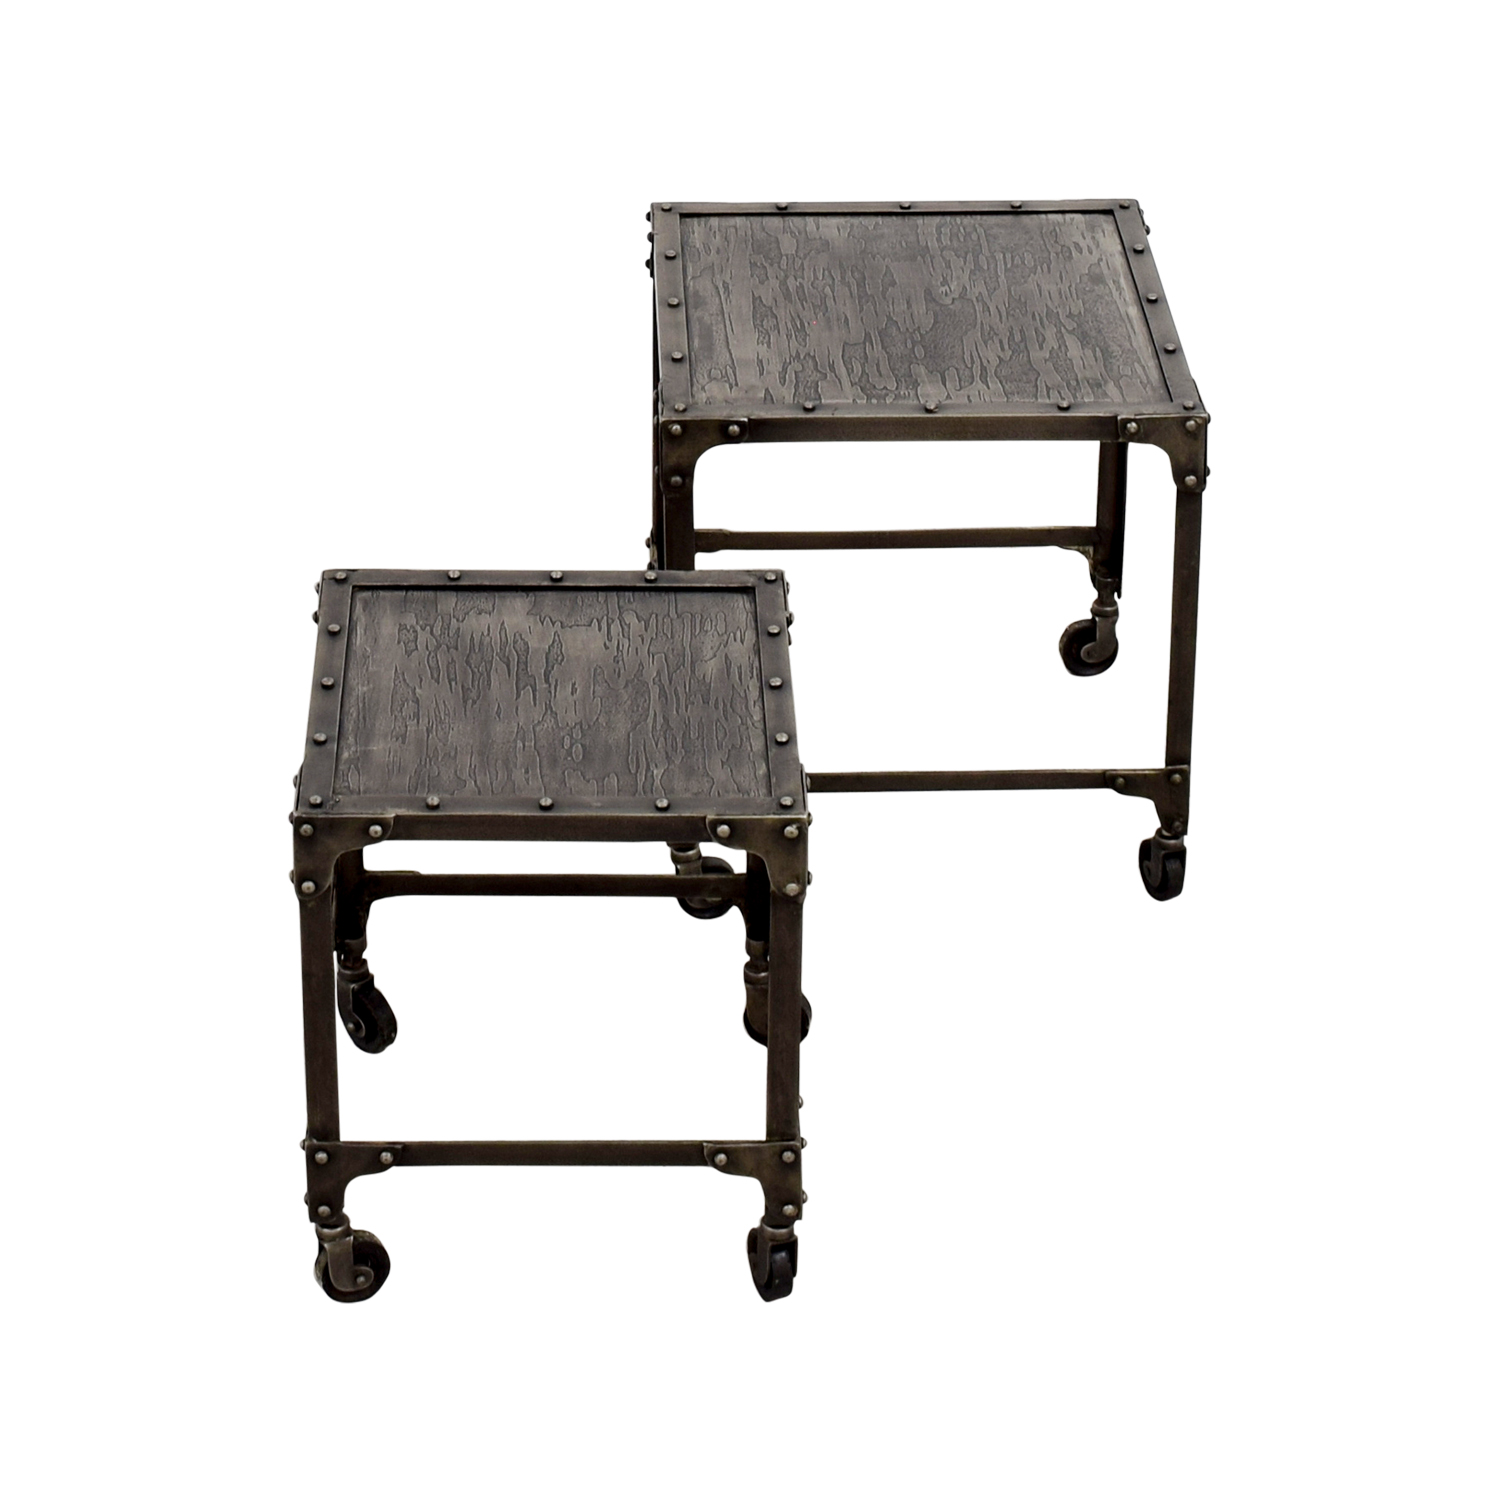 Decorative Table / Coffee Tables